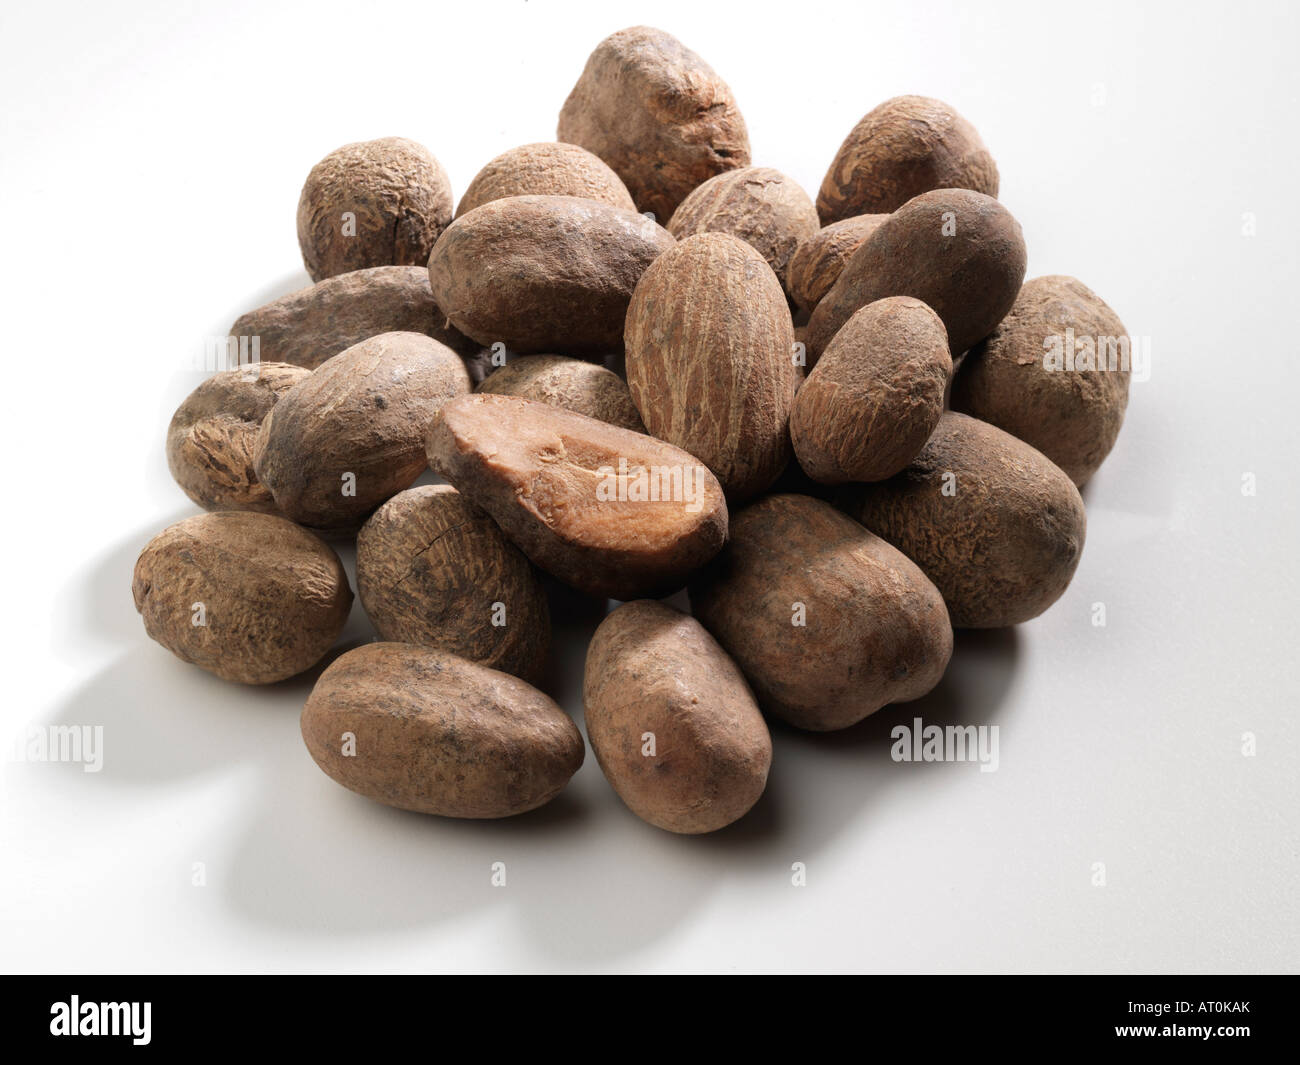 Pile of Shea Nuts Stock Photo